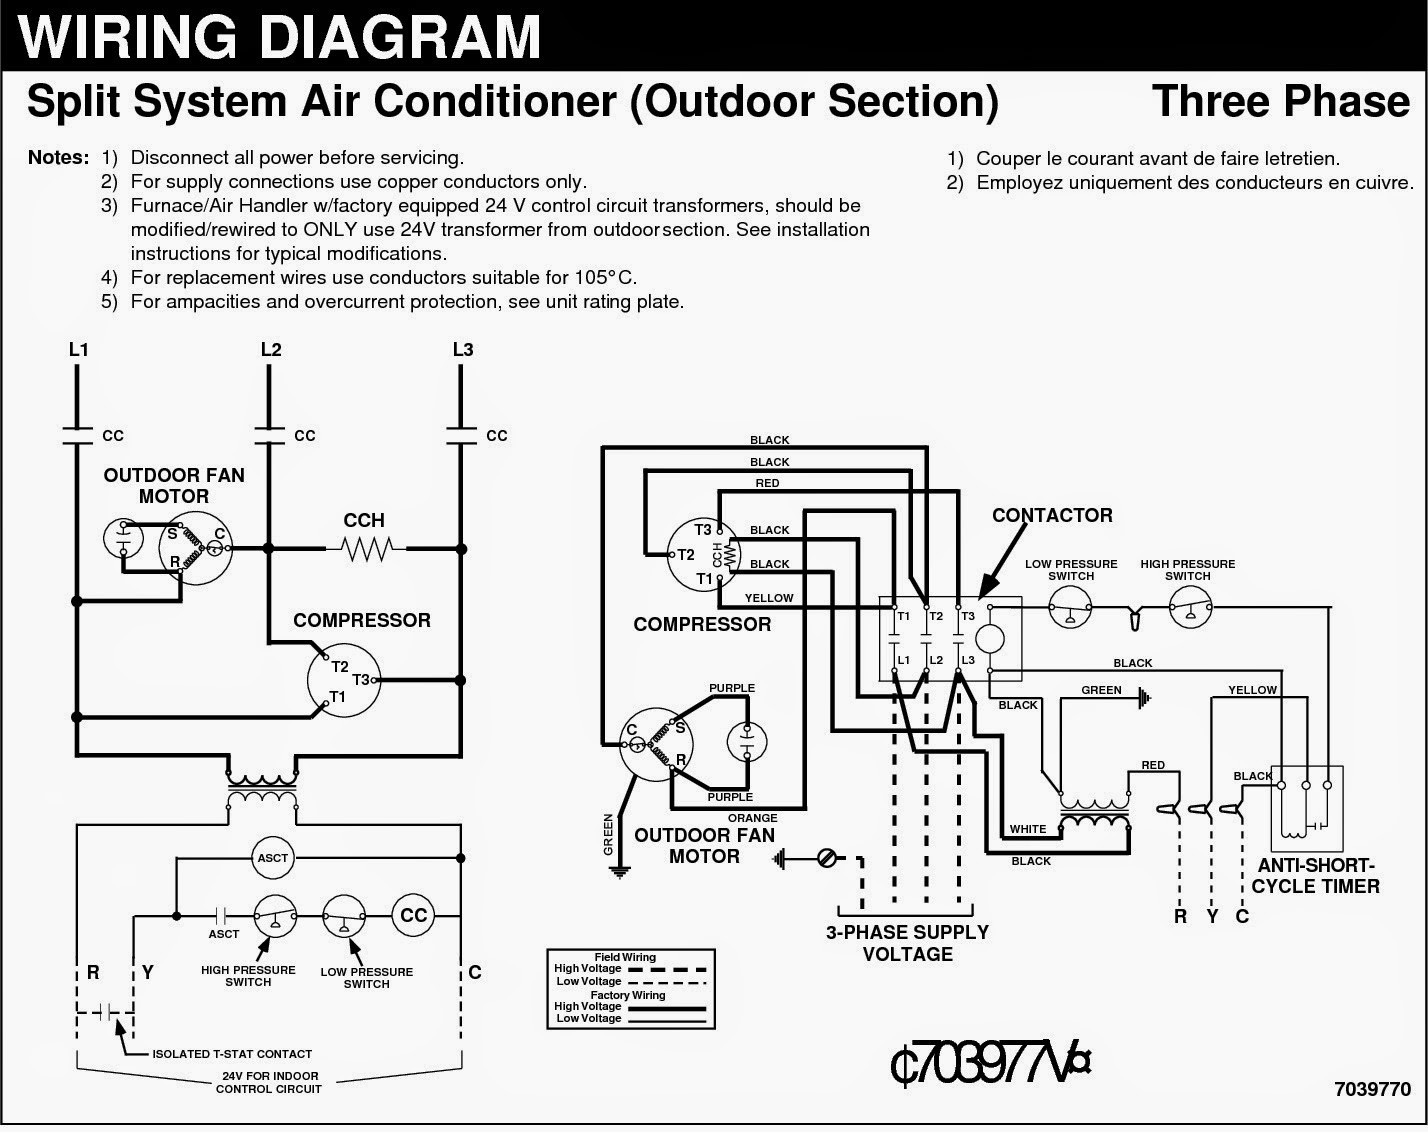 Air Conditioner Rotary Switch Wiring Diagram Great Installation Of Reverse On Single Phase Forward Auto Ac Third Level Rh 16 9 20 Jacobwinterstein Com 6 Way Diagrams Schematic